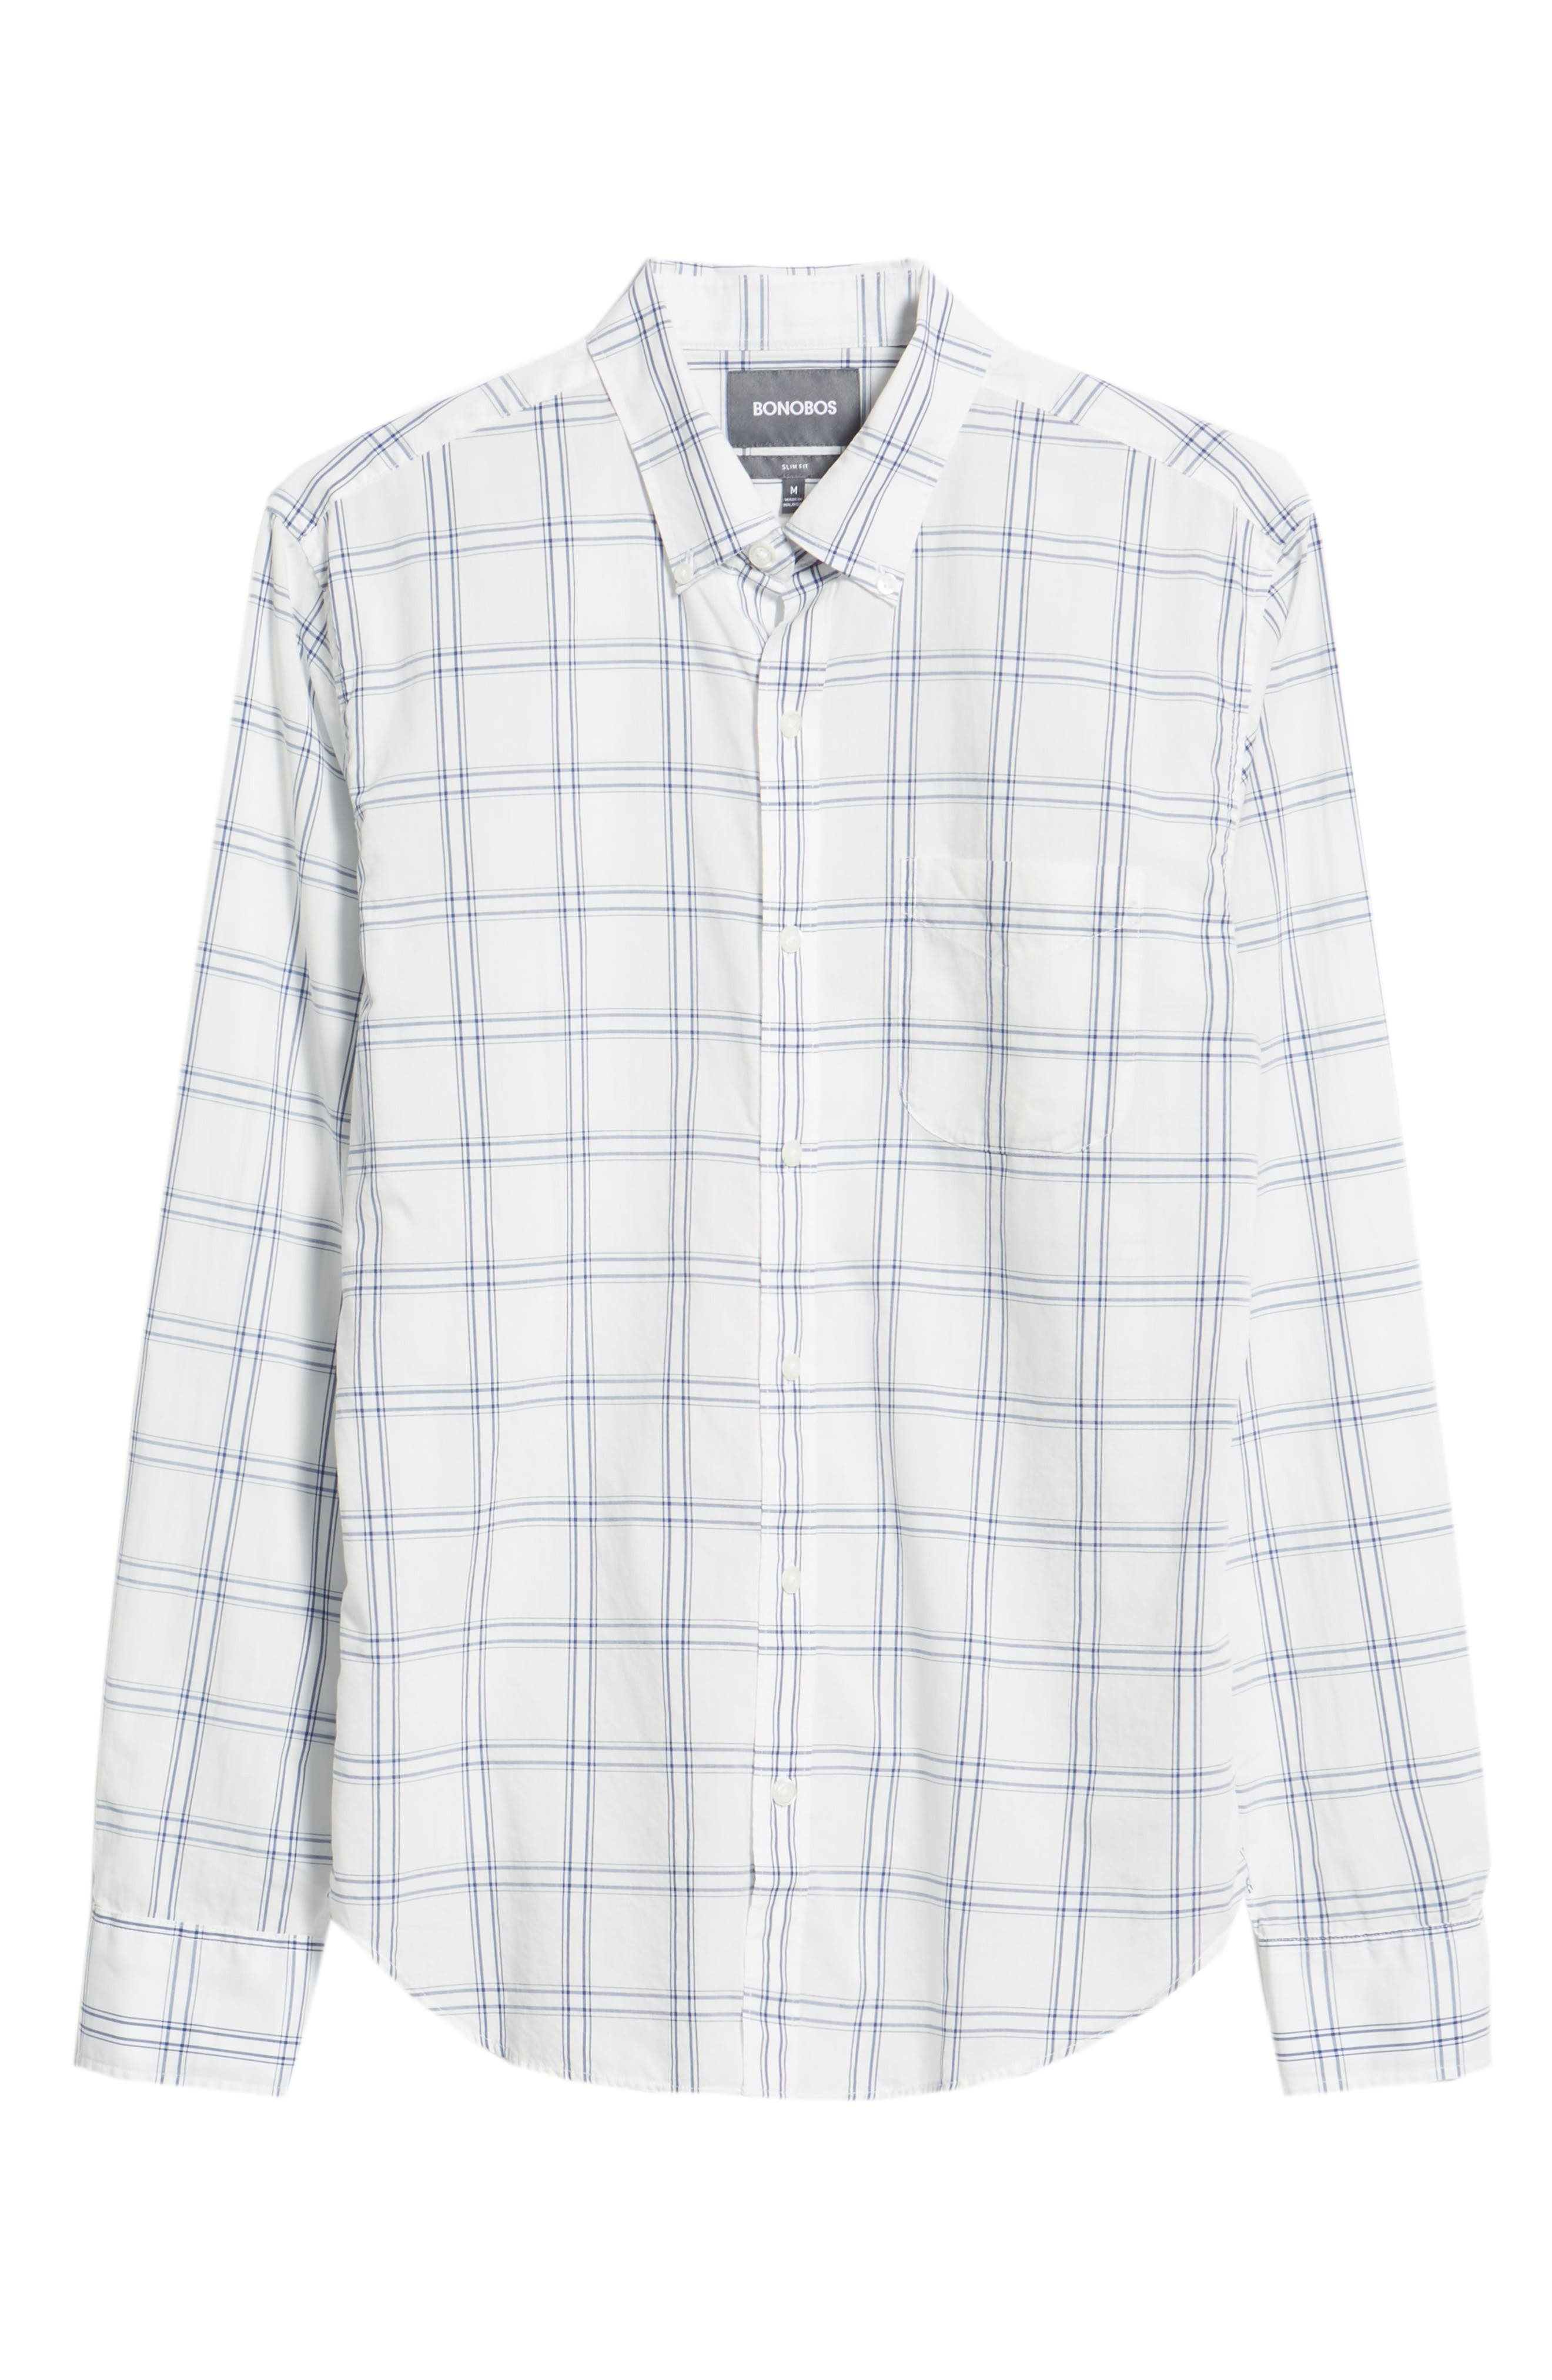 Summerweight Slim Fit Plaid Sport Shirt,                             Alternate thumbnail 5, color,                             100